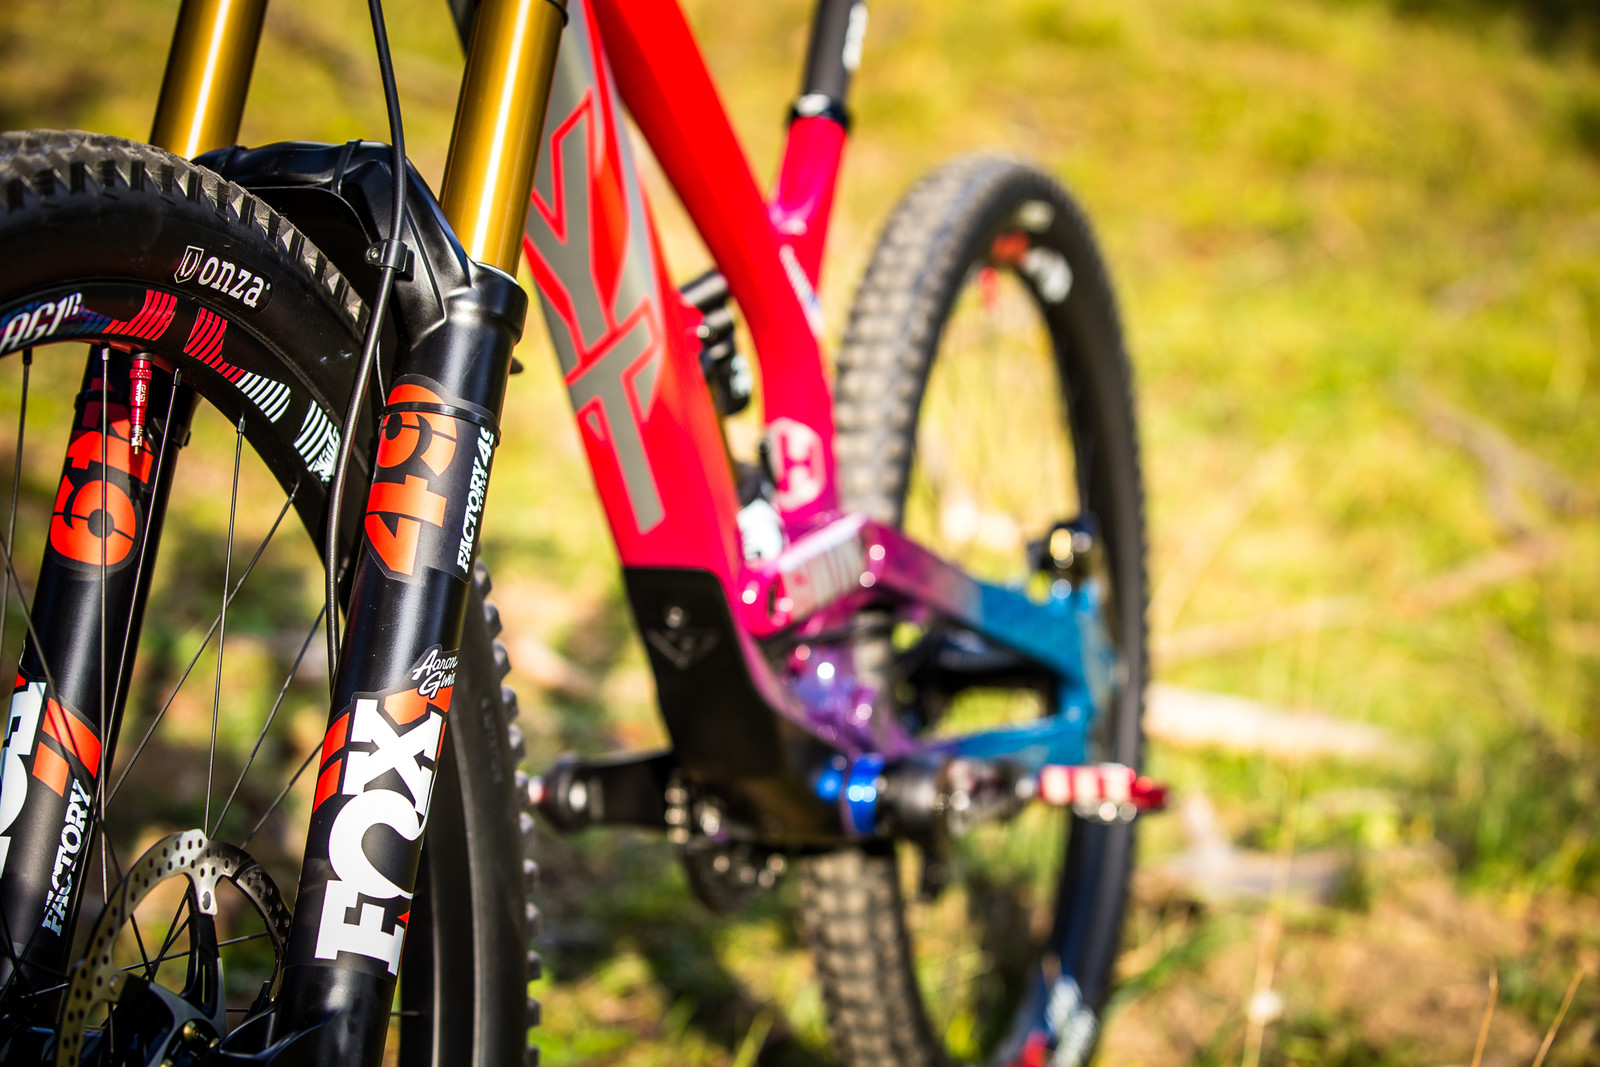 Blinging! - WORLD CHAMPS BIKE - Aaron Gwin's YT TUES - Mountain Biking Pictures - Vital MTB